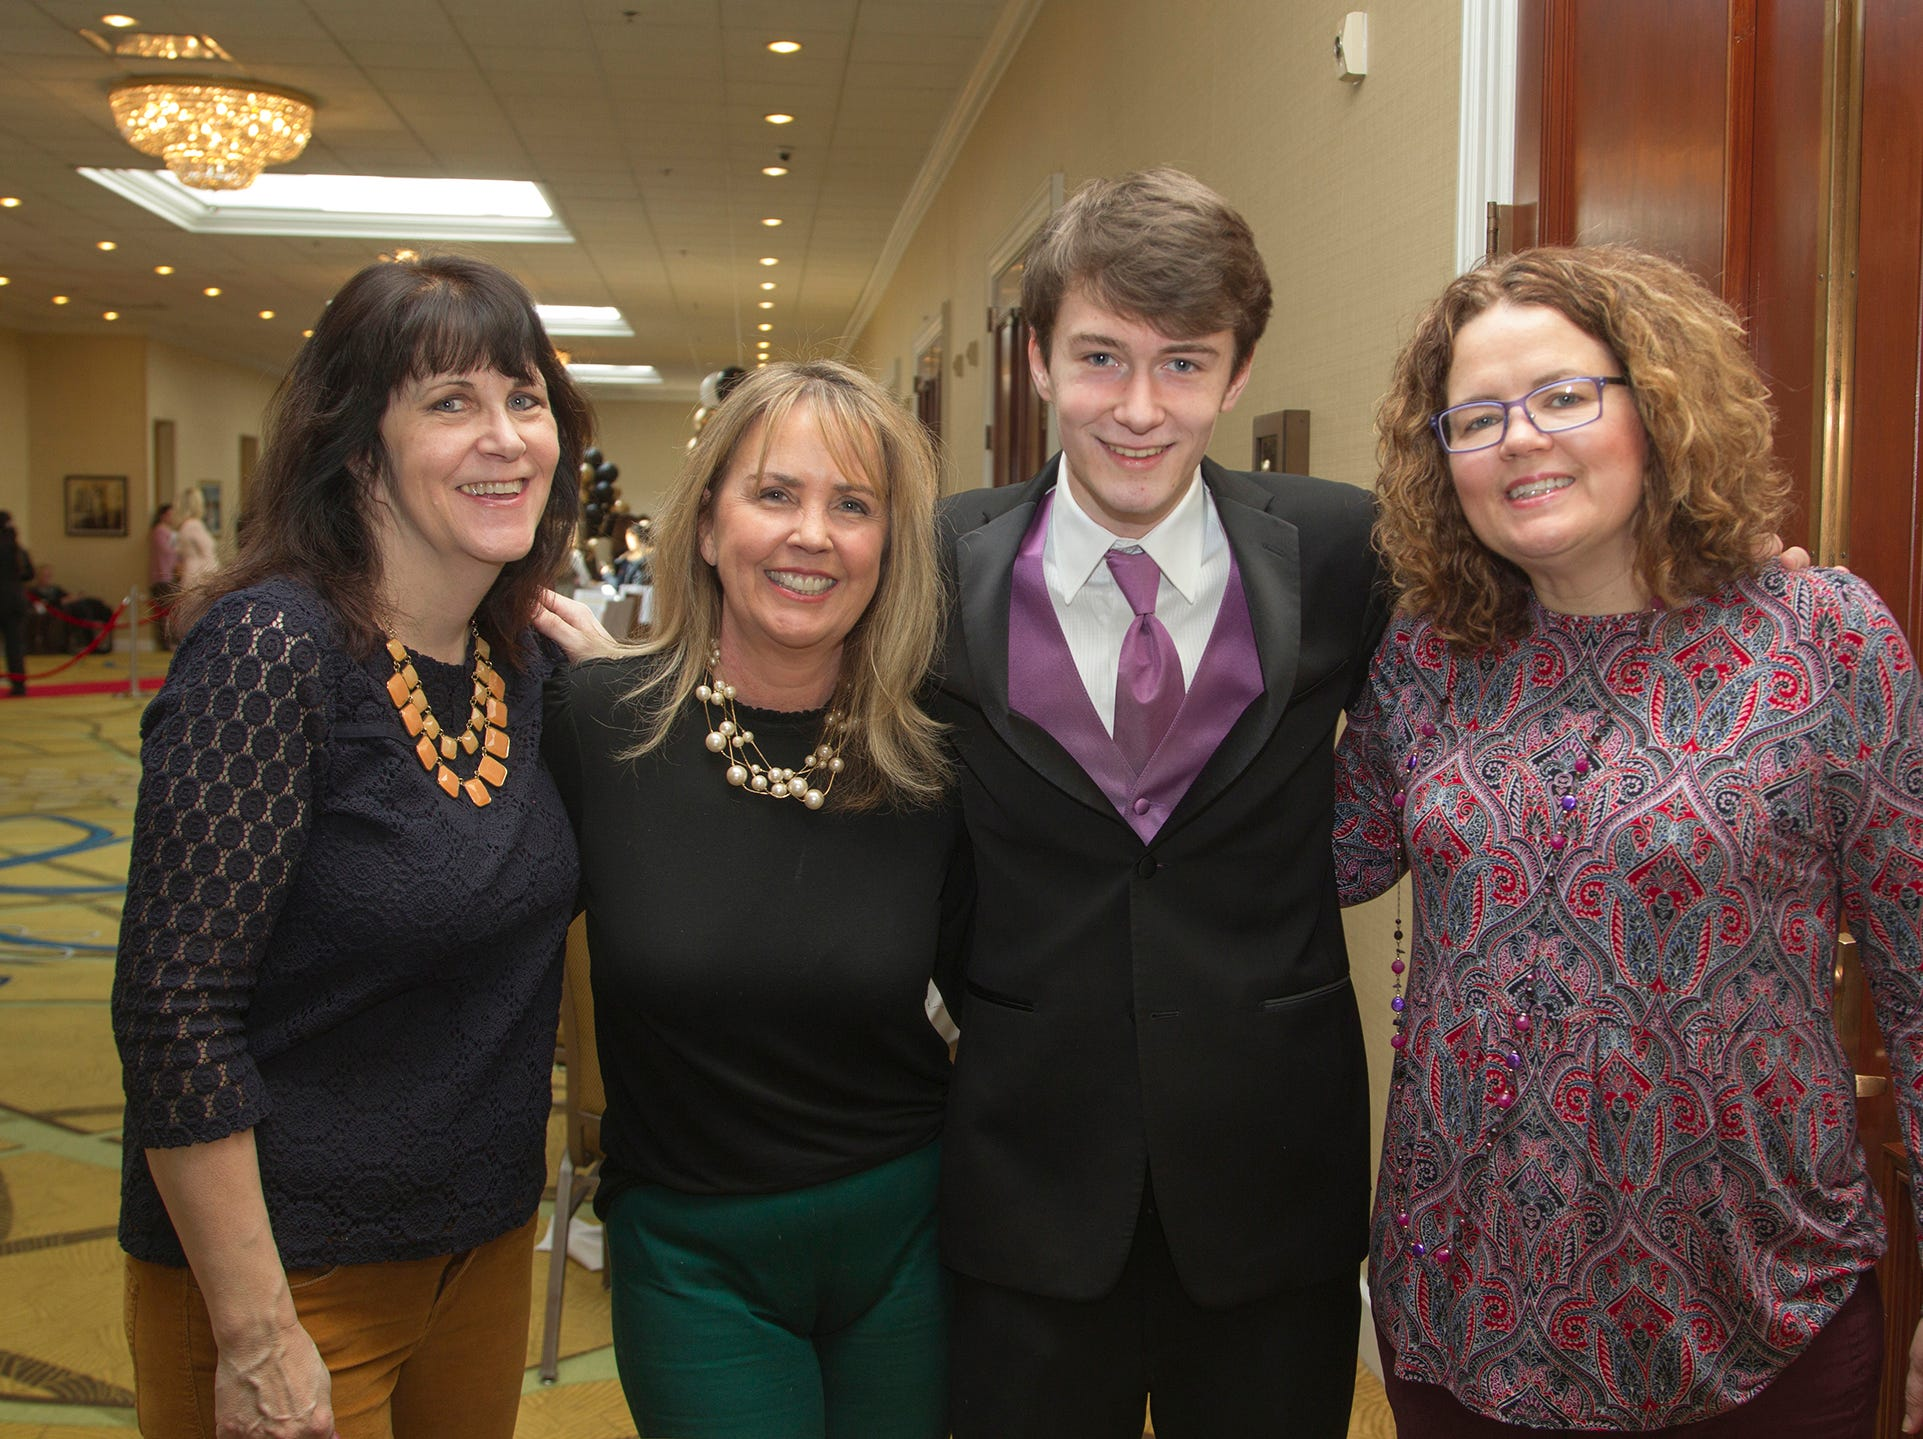 Caroline, Jane, Michael, Brenda. Ridgewood High School seniors held their Project Graduation fashion show at the Teaneck Marriott at Glenpointe. Students walked the runway in this season's latest fashion trends. All funds raised benefited the school's Project Graduation Fund for the class of 2019. 03/03/2019